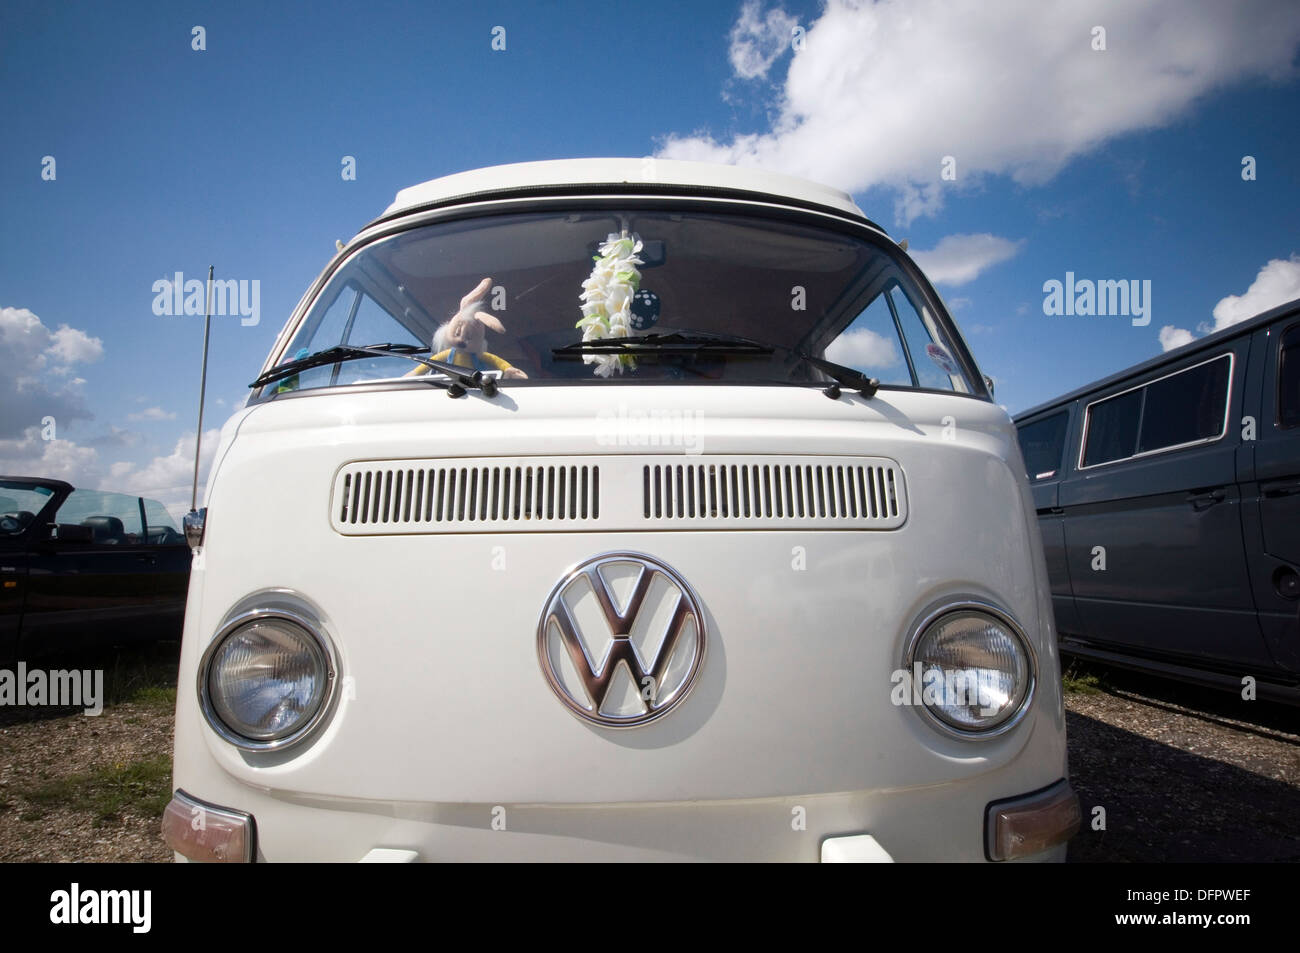 vw bus van vans buses bay window volkswagen logo badge camper campervan campervans - Stock Image